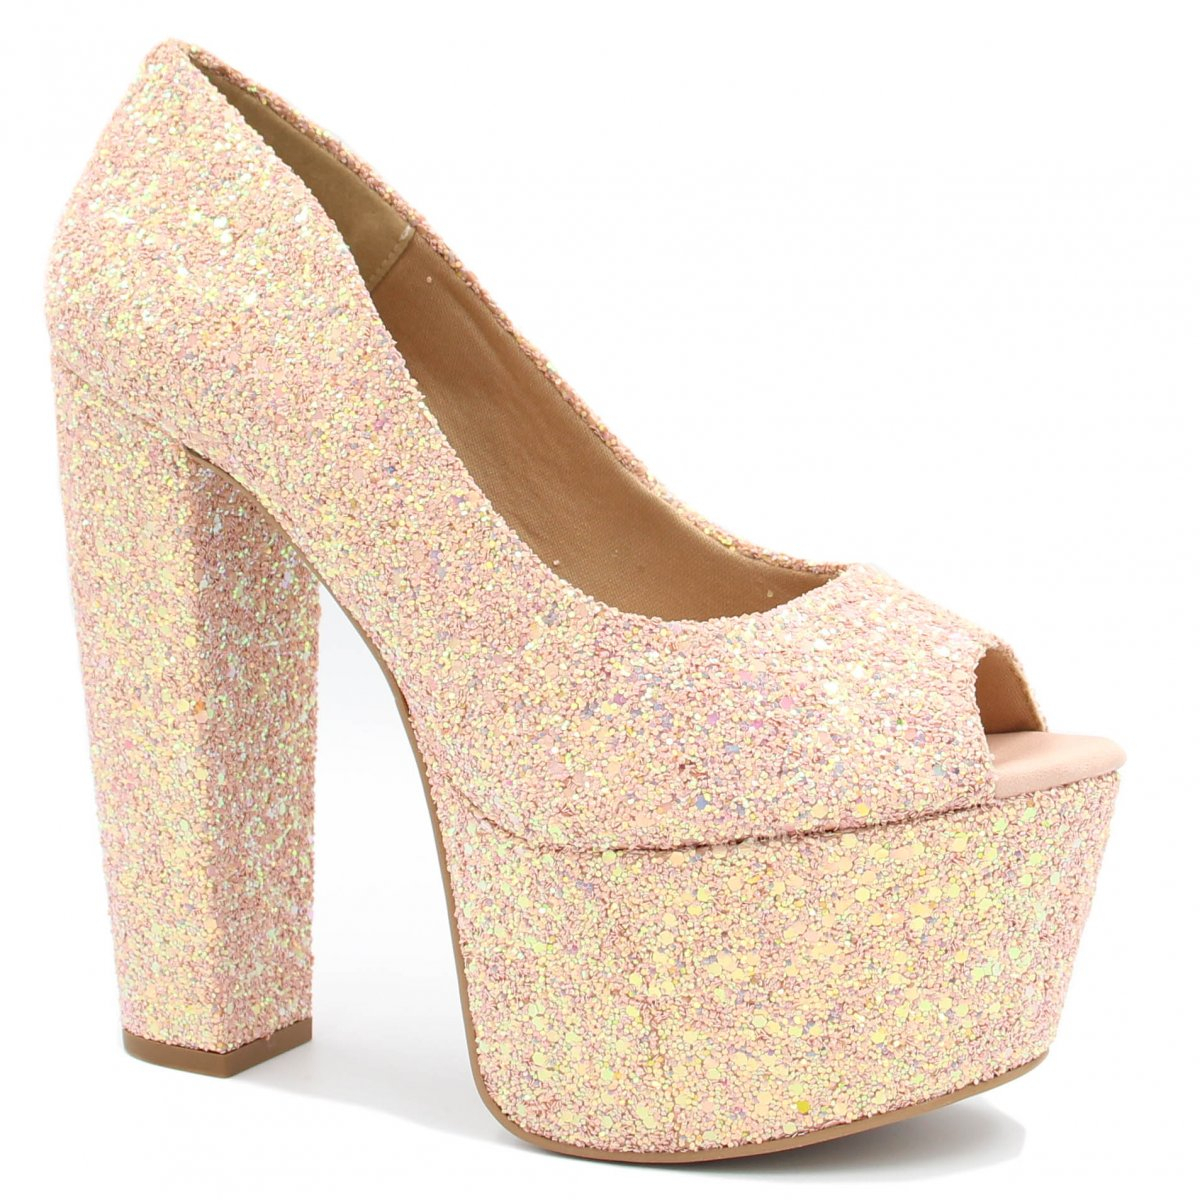 Sapato Zariff Shoes Peep Toe Salto Alto Rosa